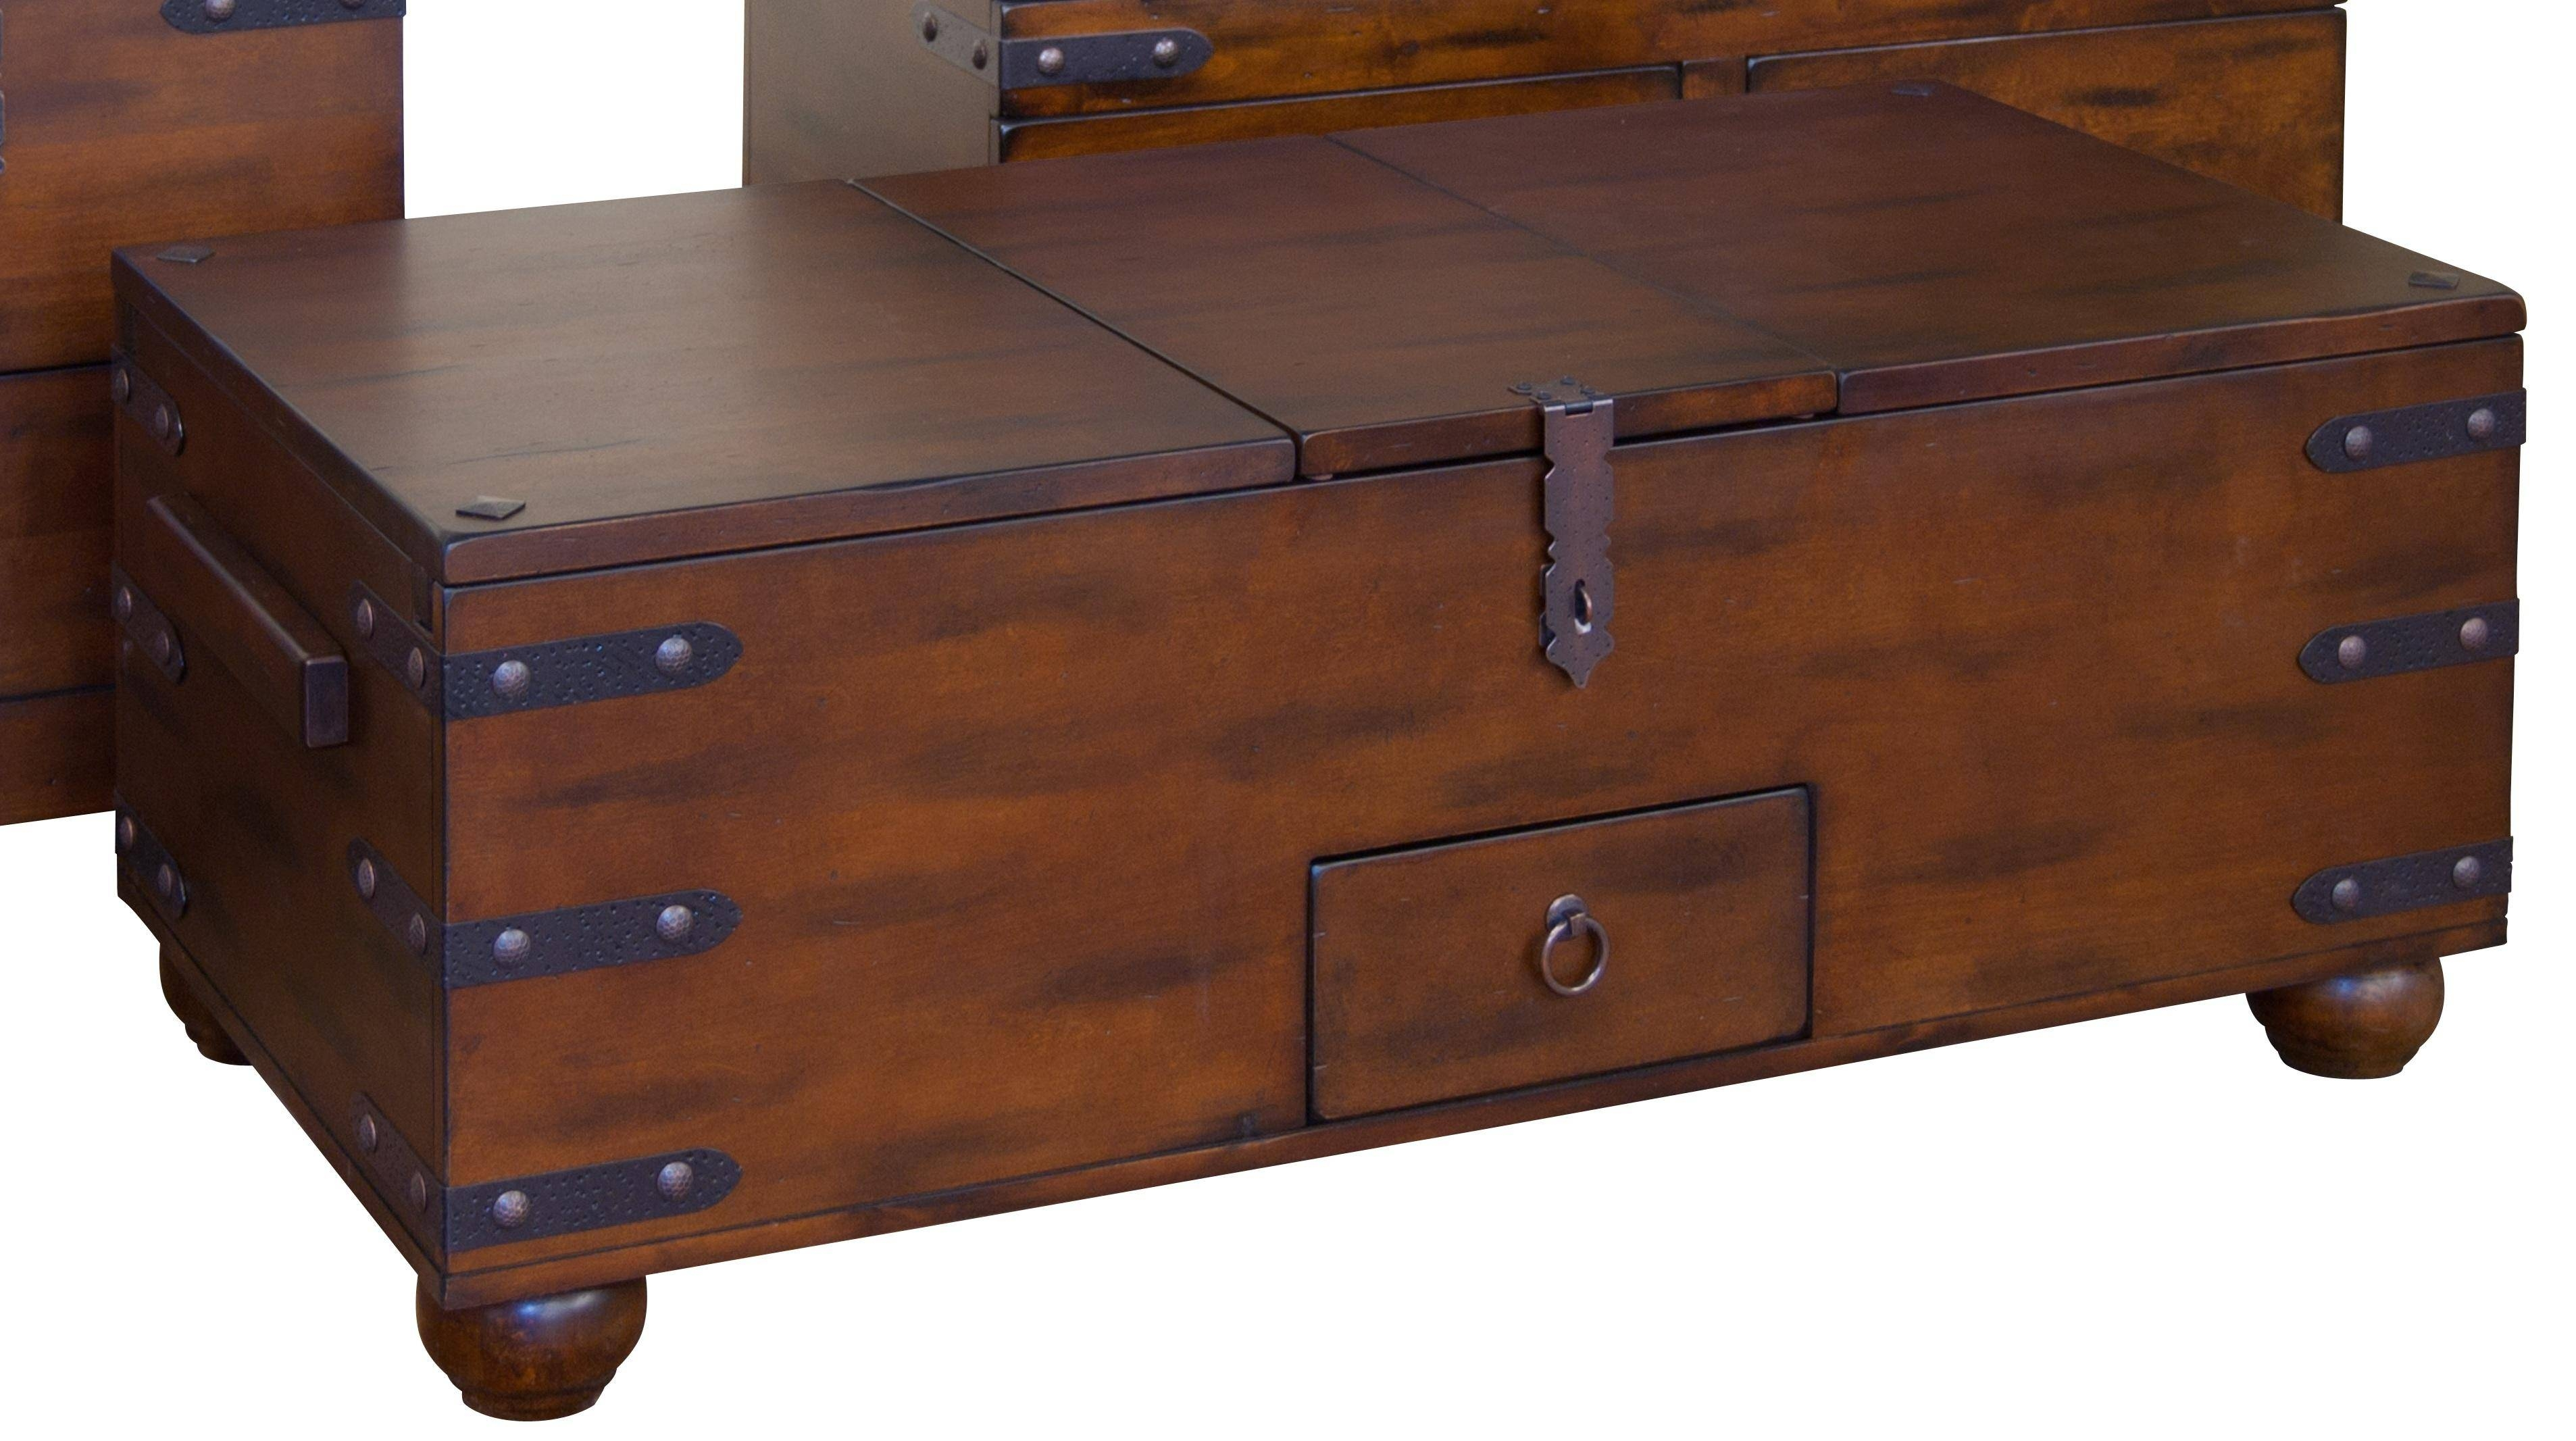 Coffee Table: Mesmerizing Storage Trunk Coffee Table In Your regarding Blanket Box Coffee Tables (Image 14 of 30)